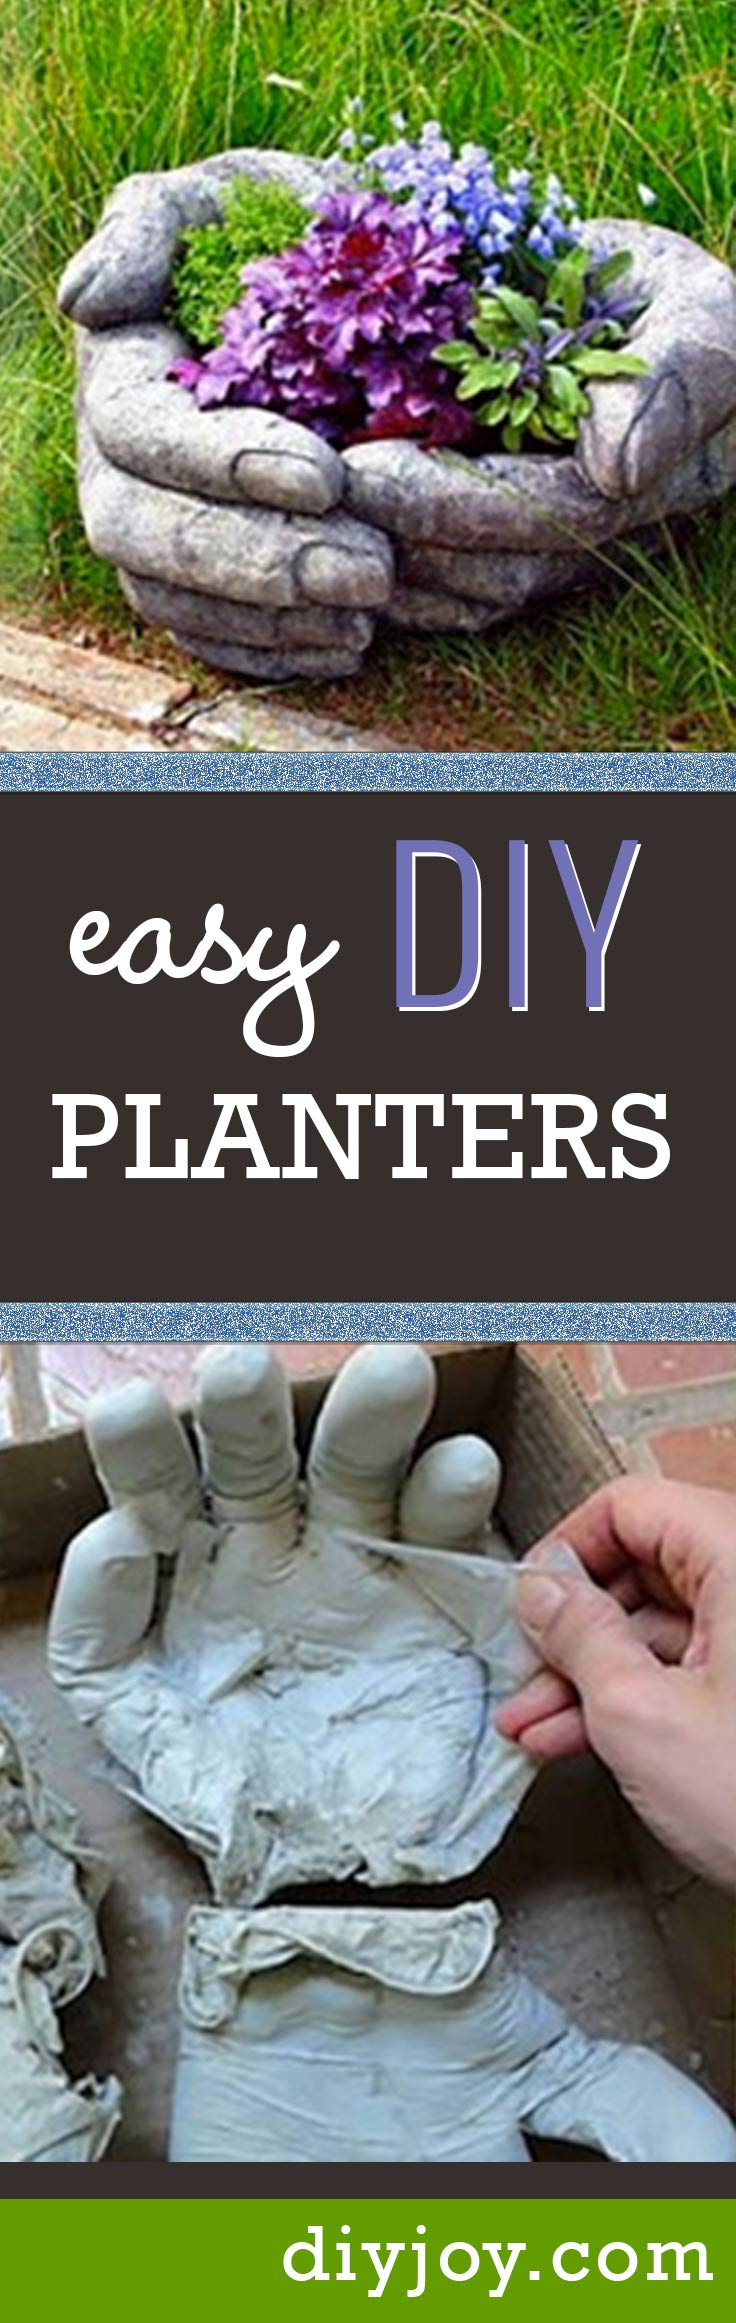 These diy concrete hand planters are easier to make than you think easy diy planters for cool do it yourself gardening idea concrete pots in hand shade solutioingenieria Images